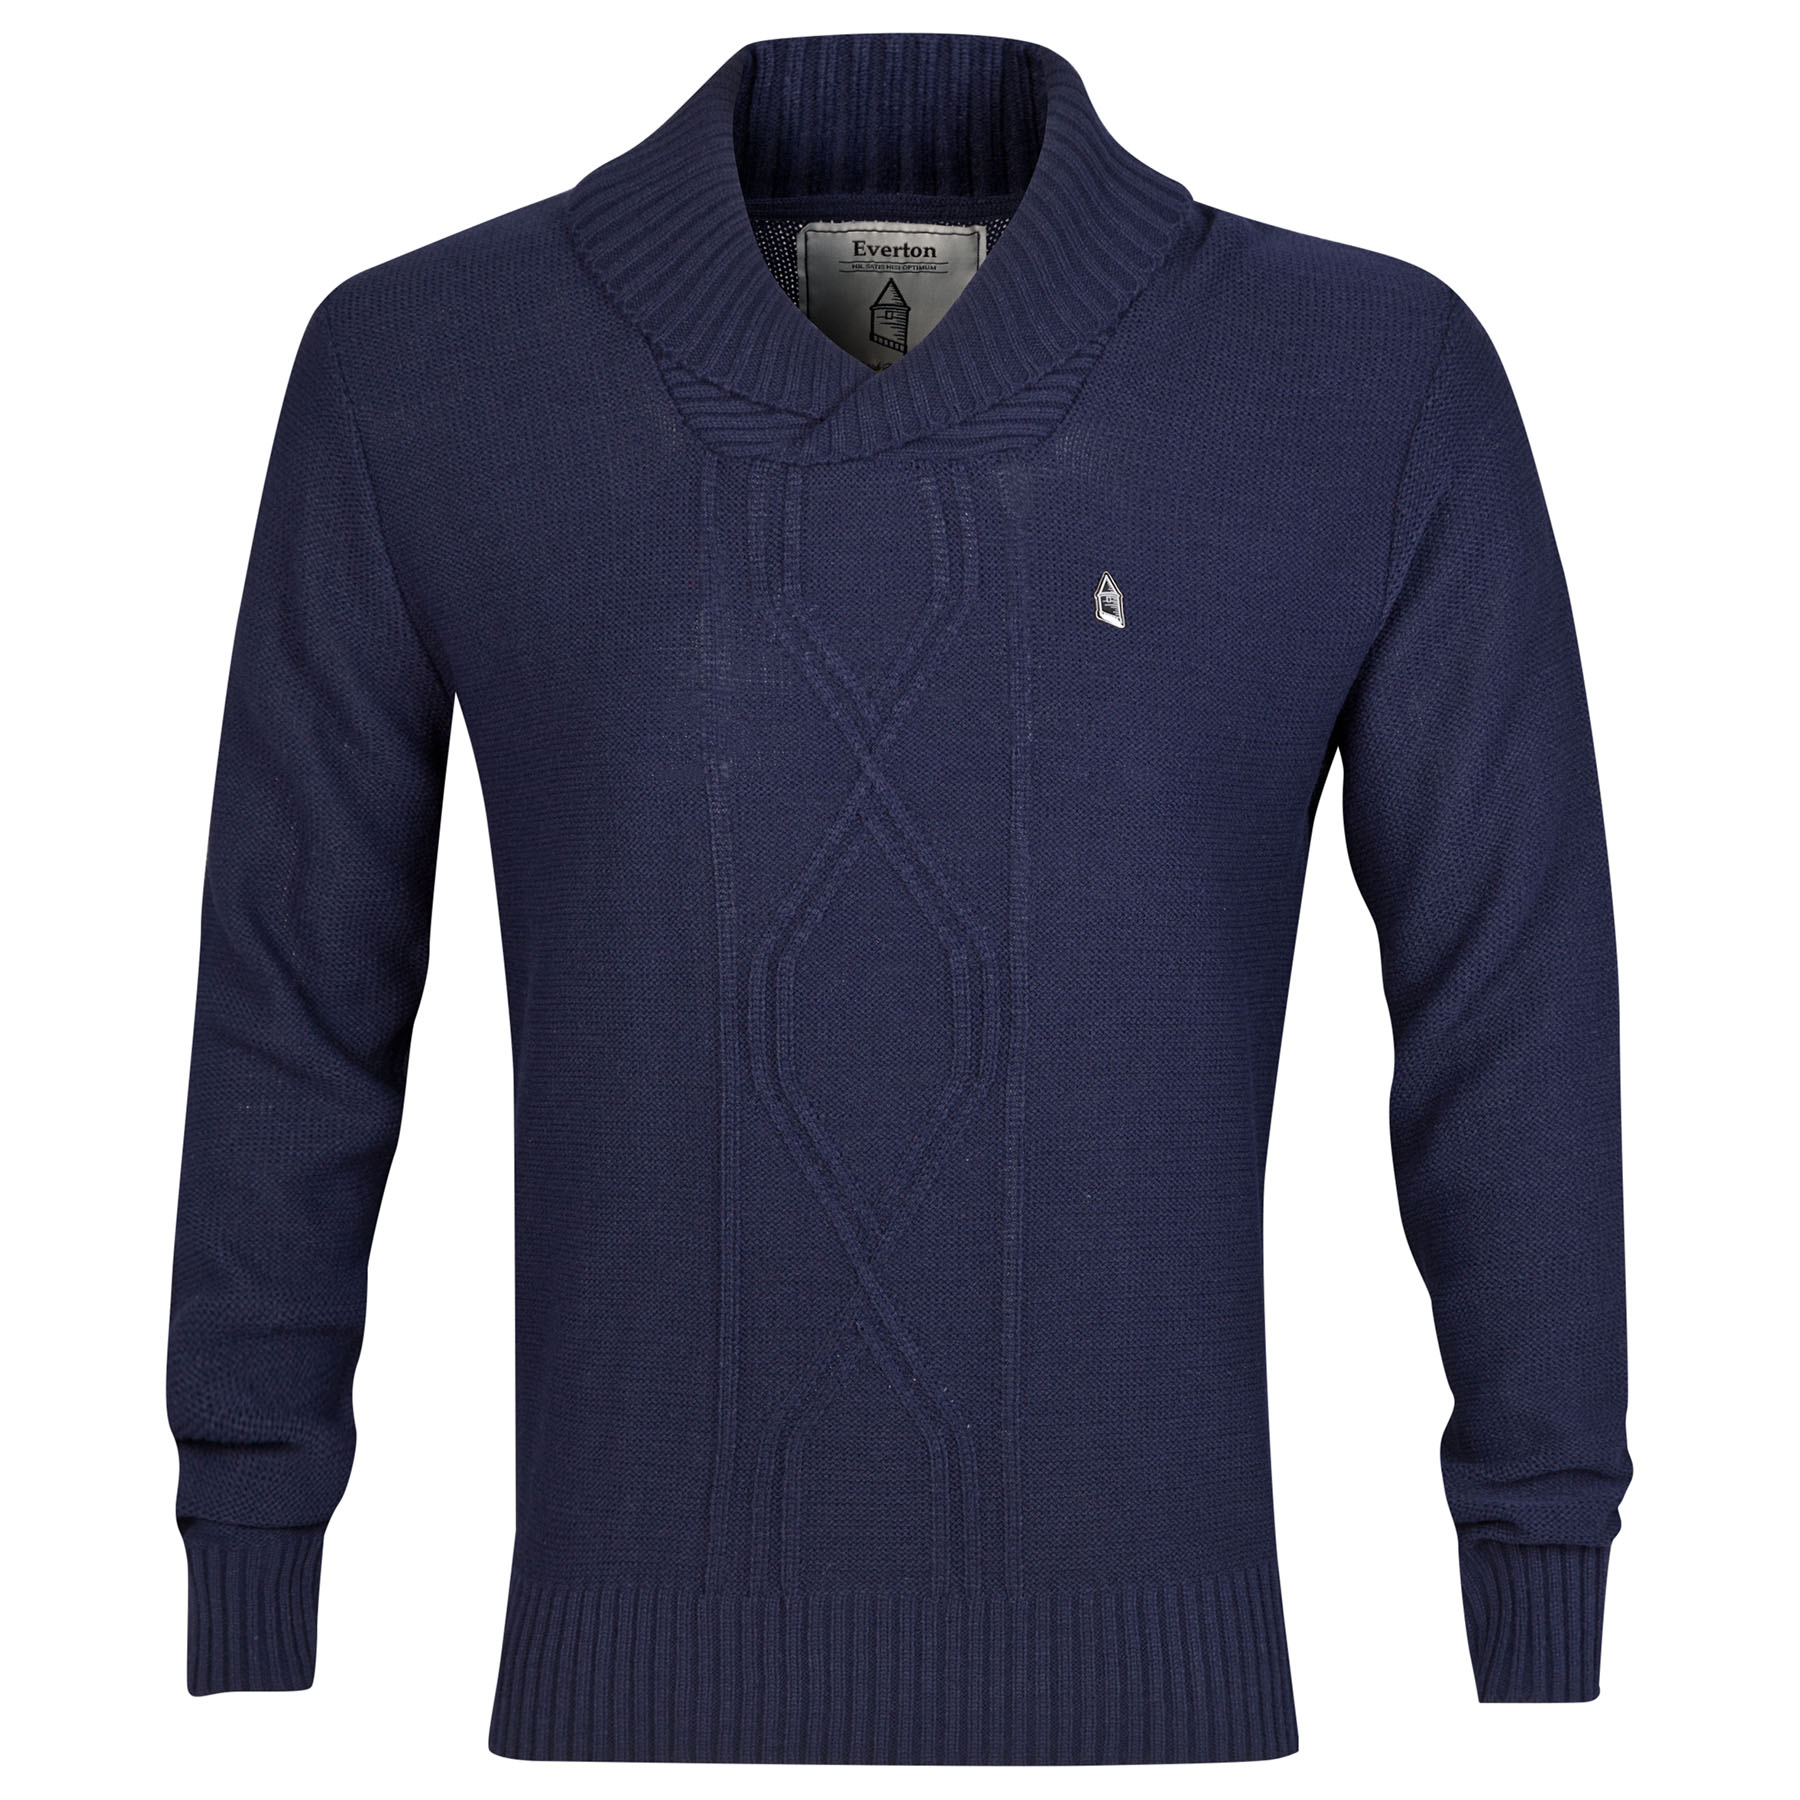 Everton Jumper - Navy - Mens